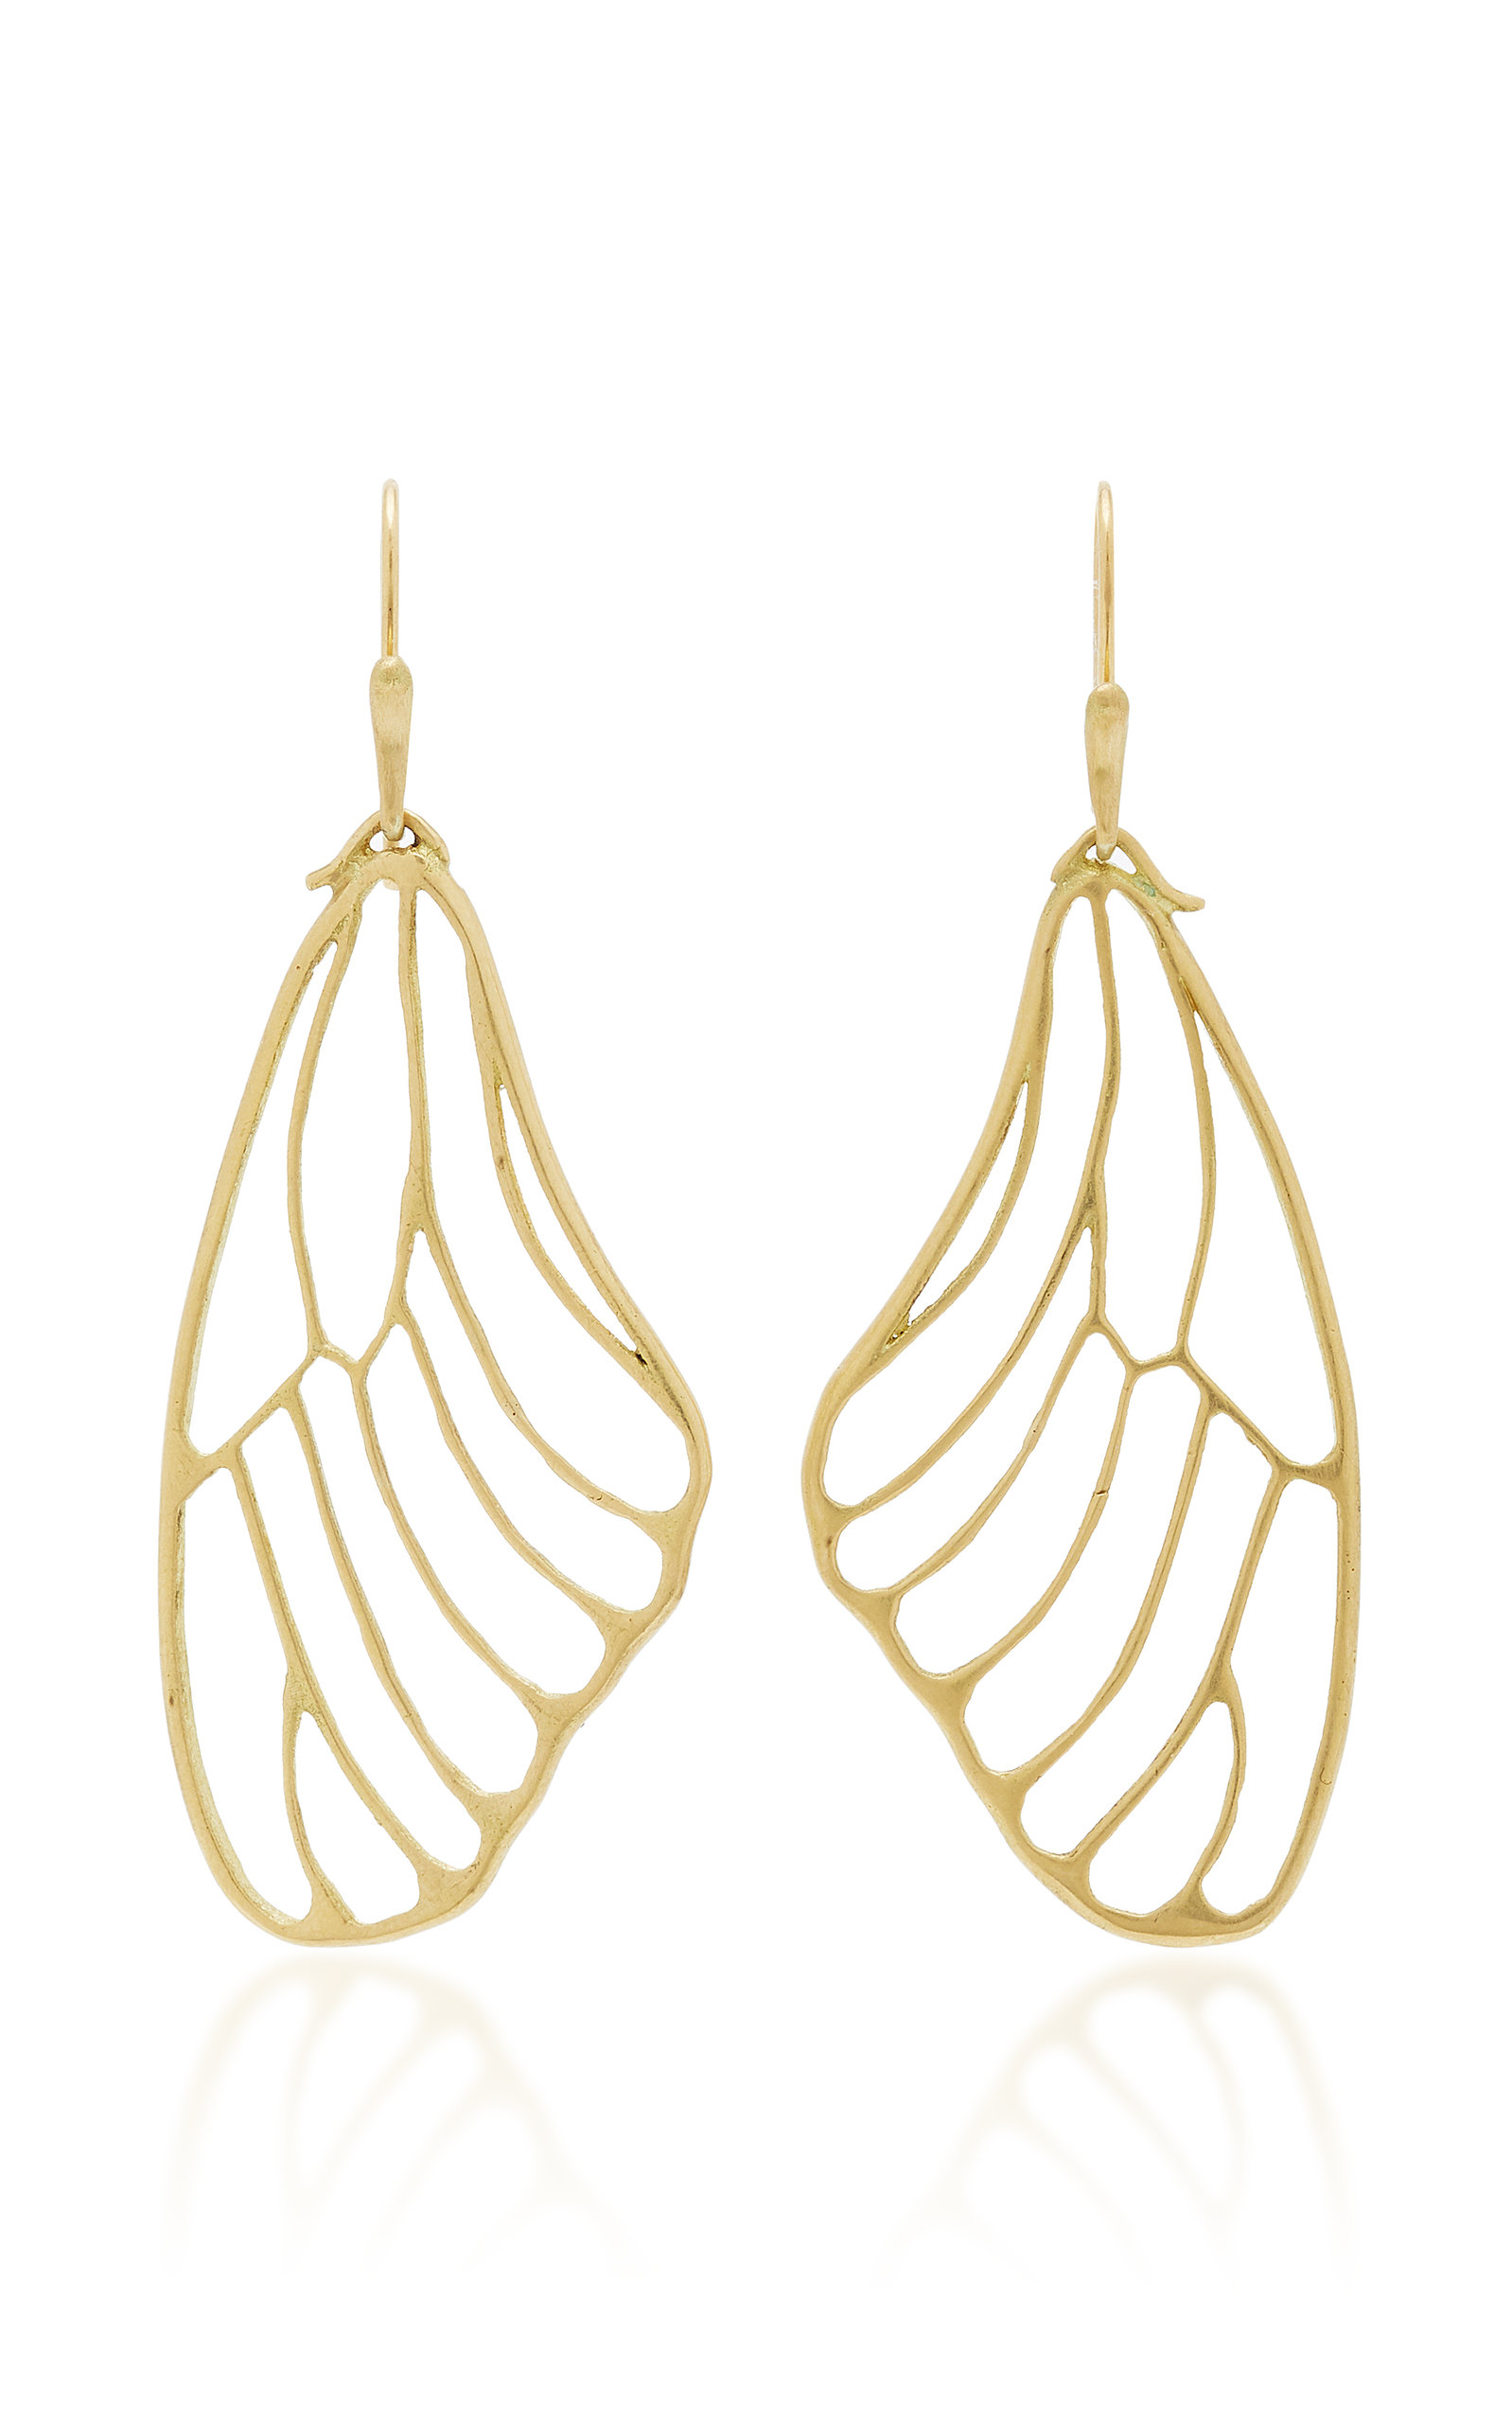 Annette Ferdinandsen 18k Gold Erfly Wing Earrings